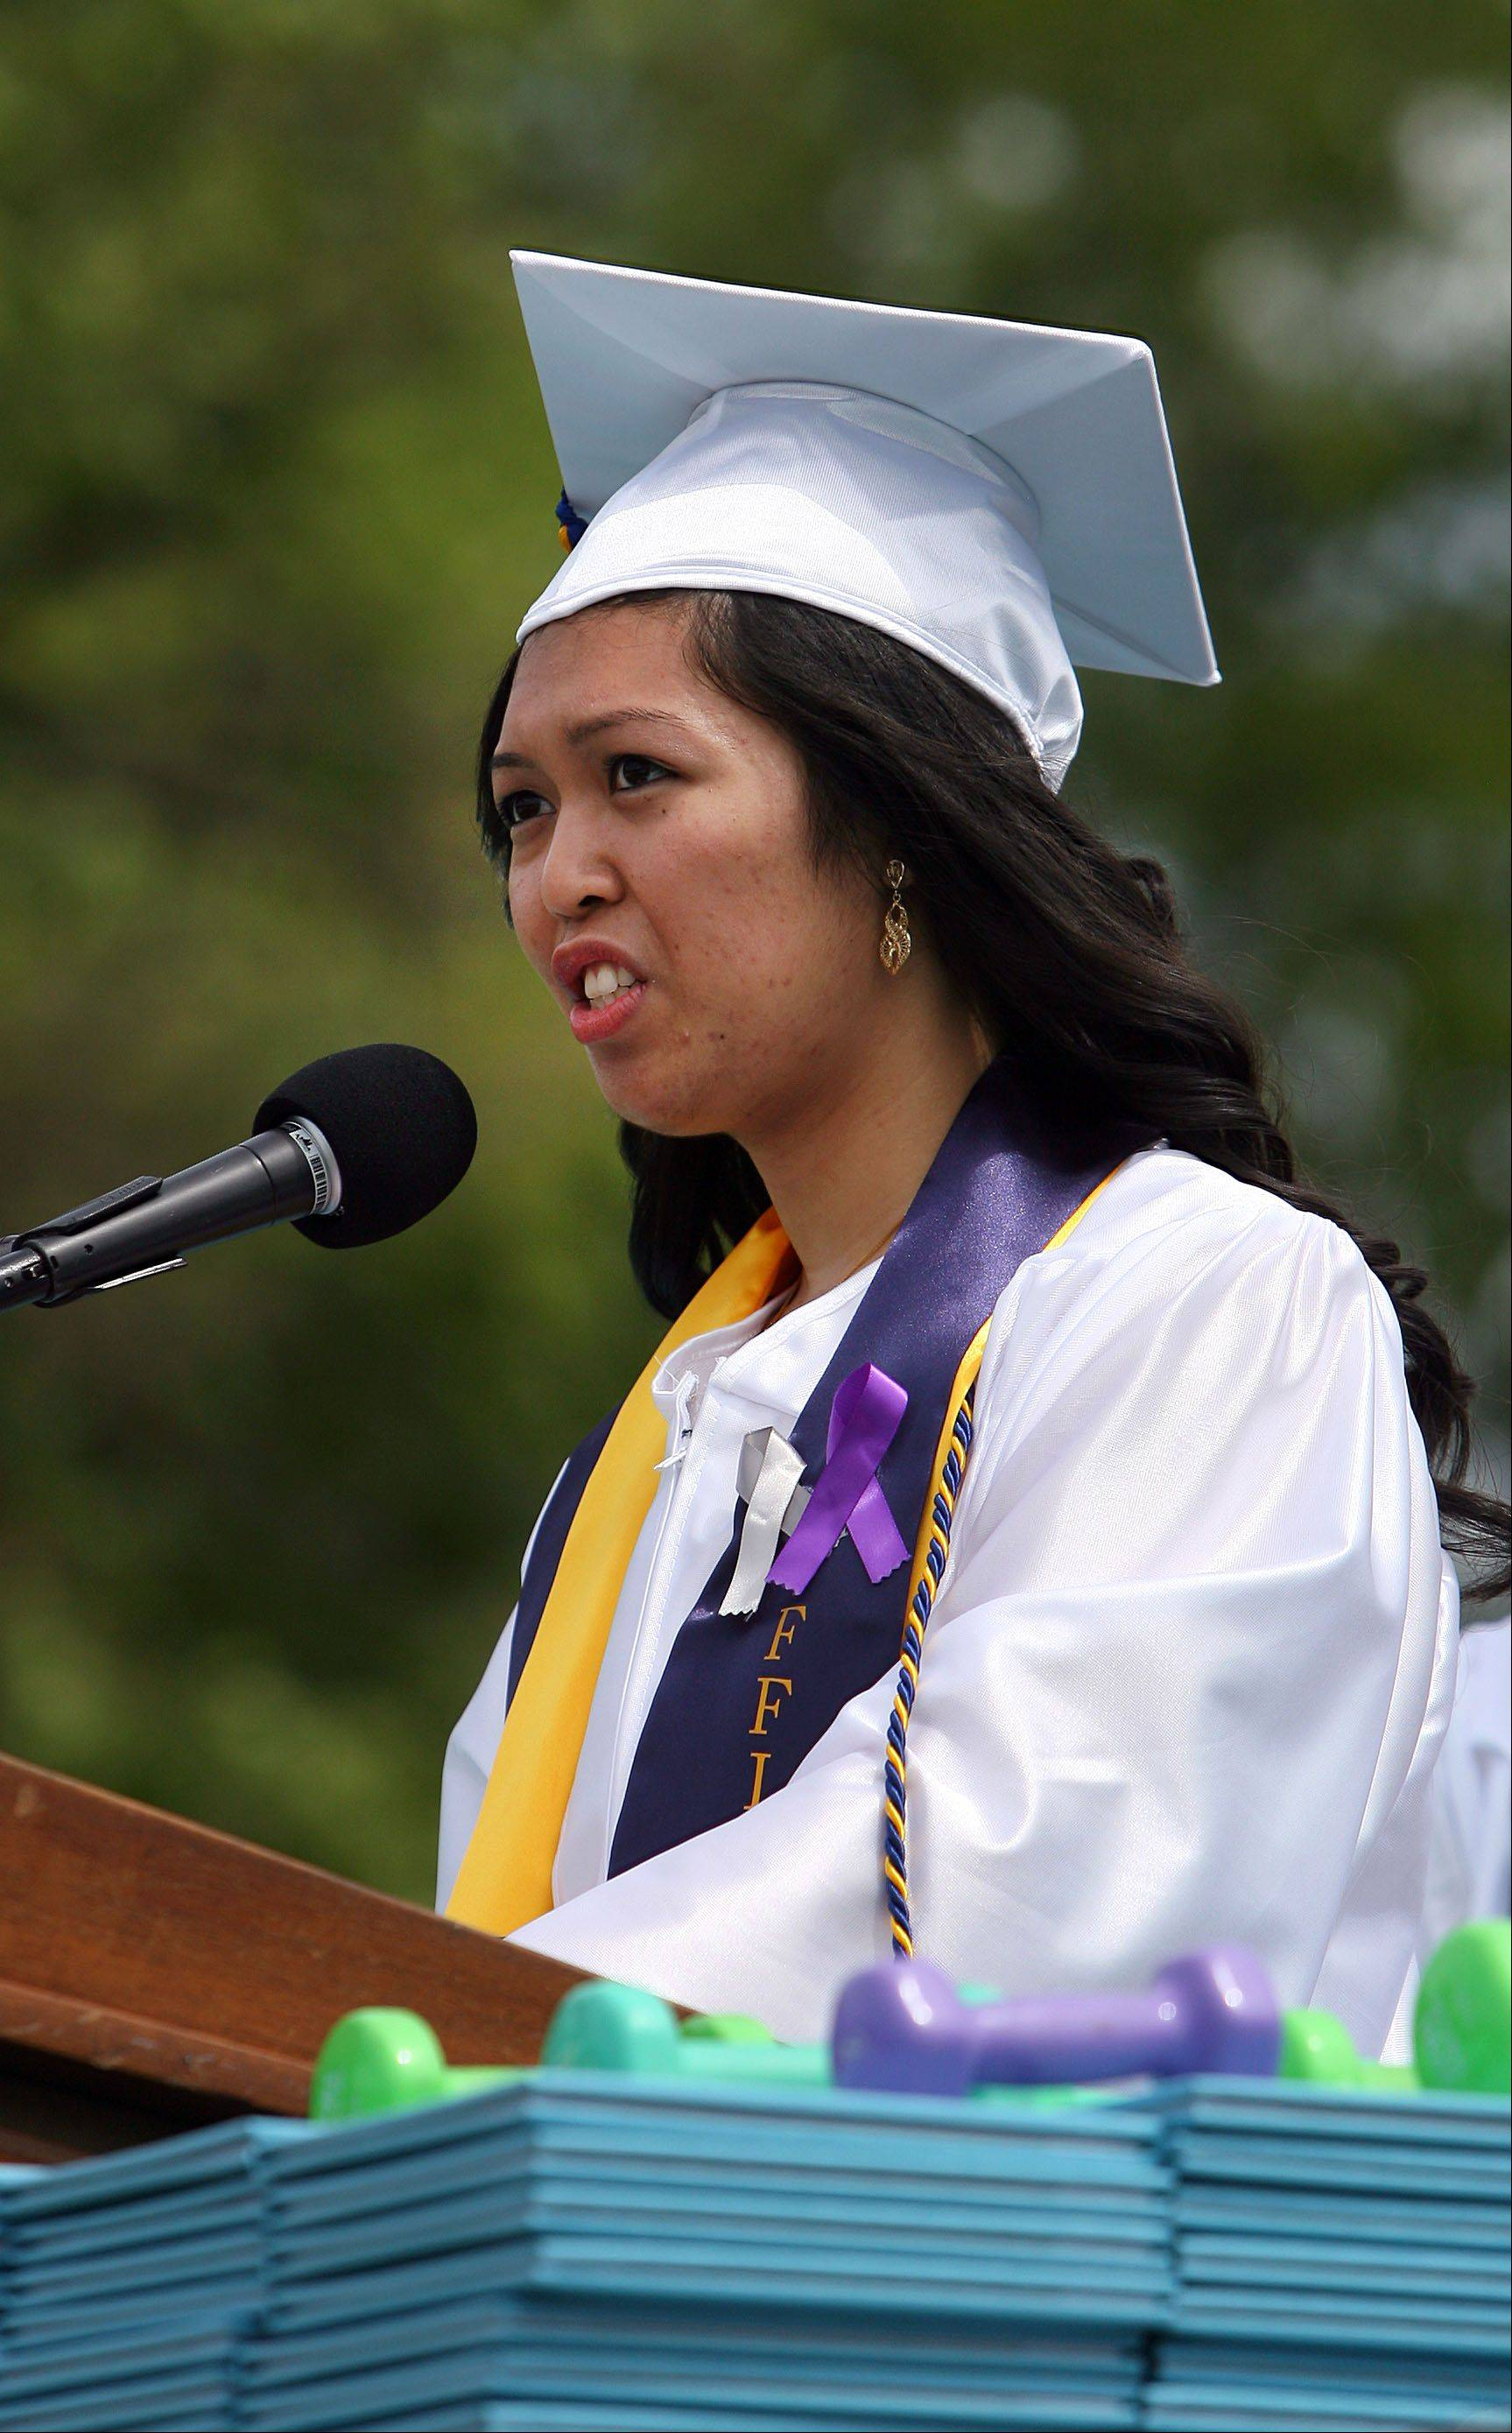 Jean Manianglung gives the welcome address during the Maine West High School graduation ceremony in Des Plaines Sunday.